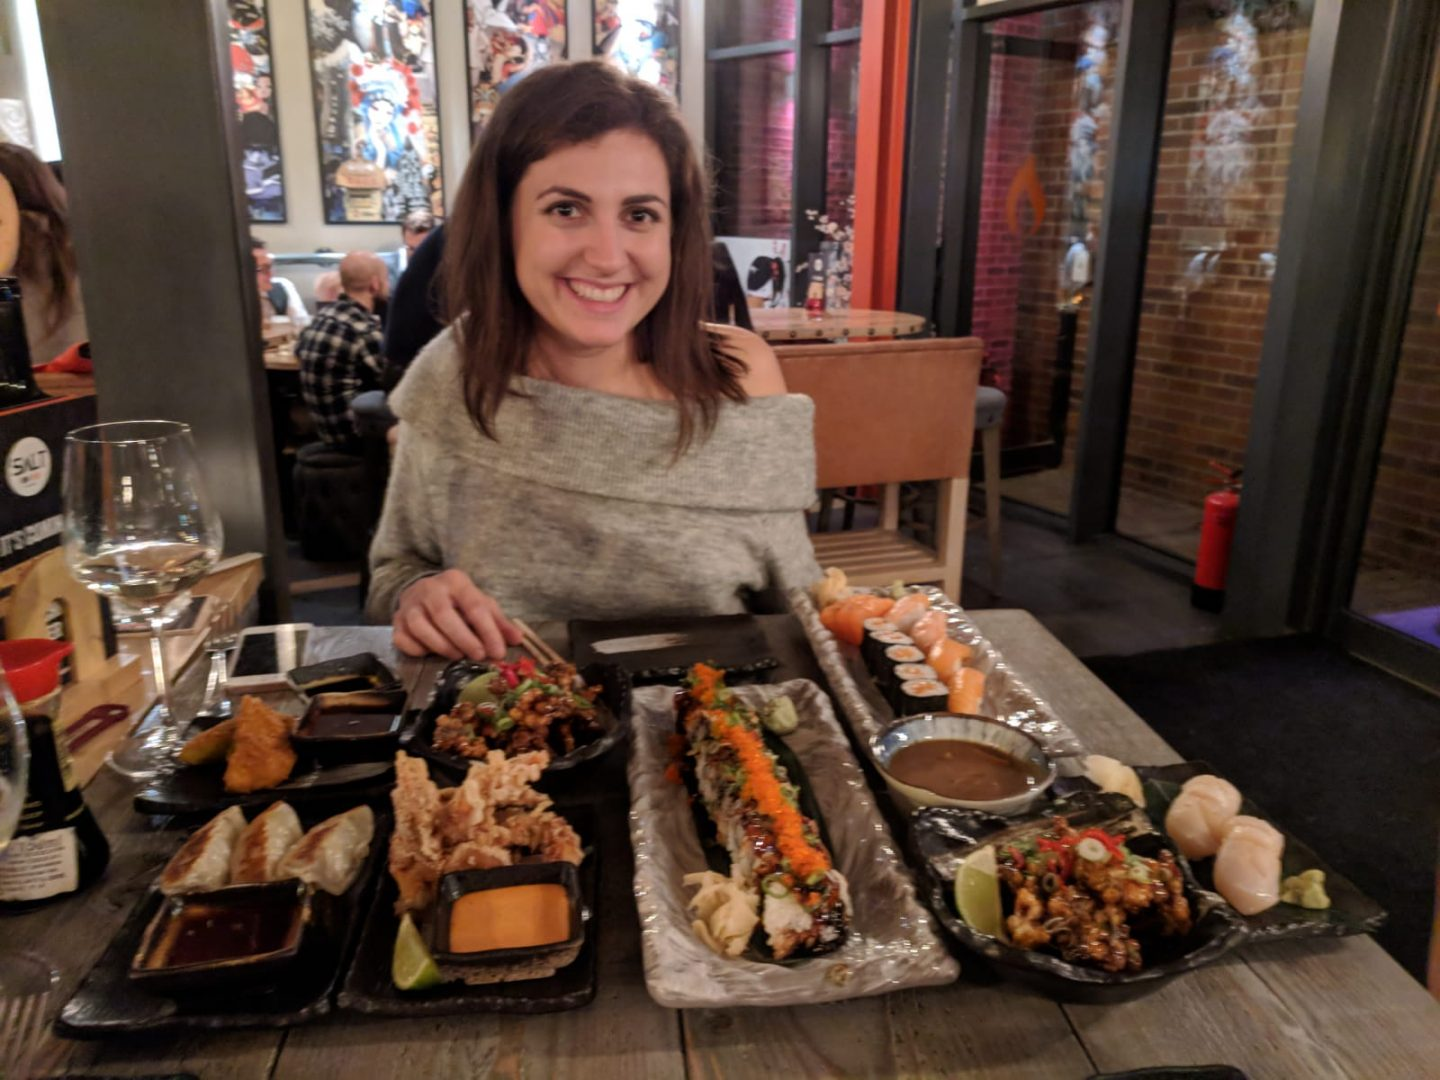 Leeds sushi: girl with a table full of sushi dishes in front of her, smiling into the camera